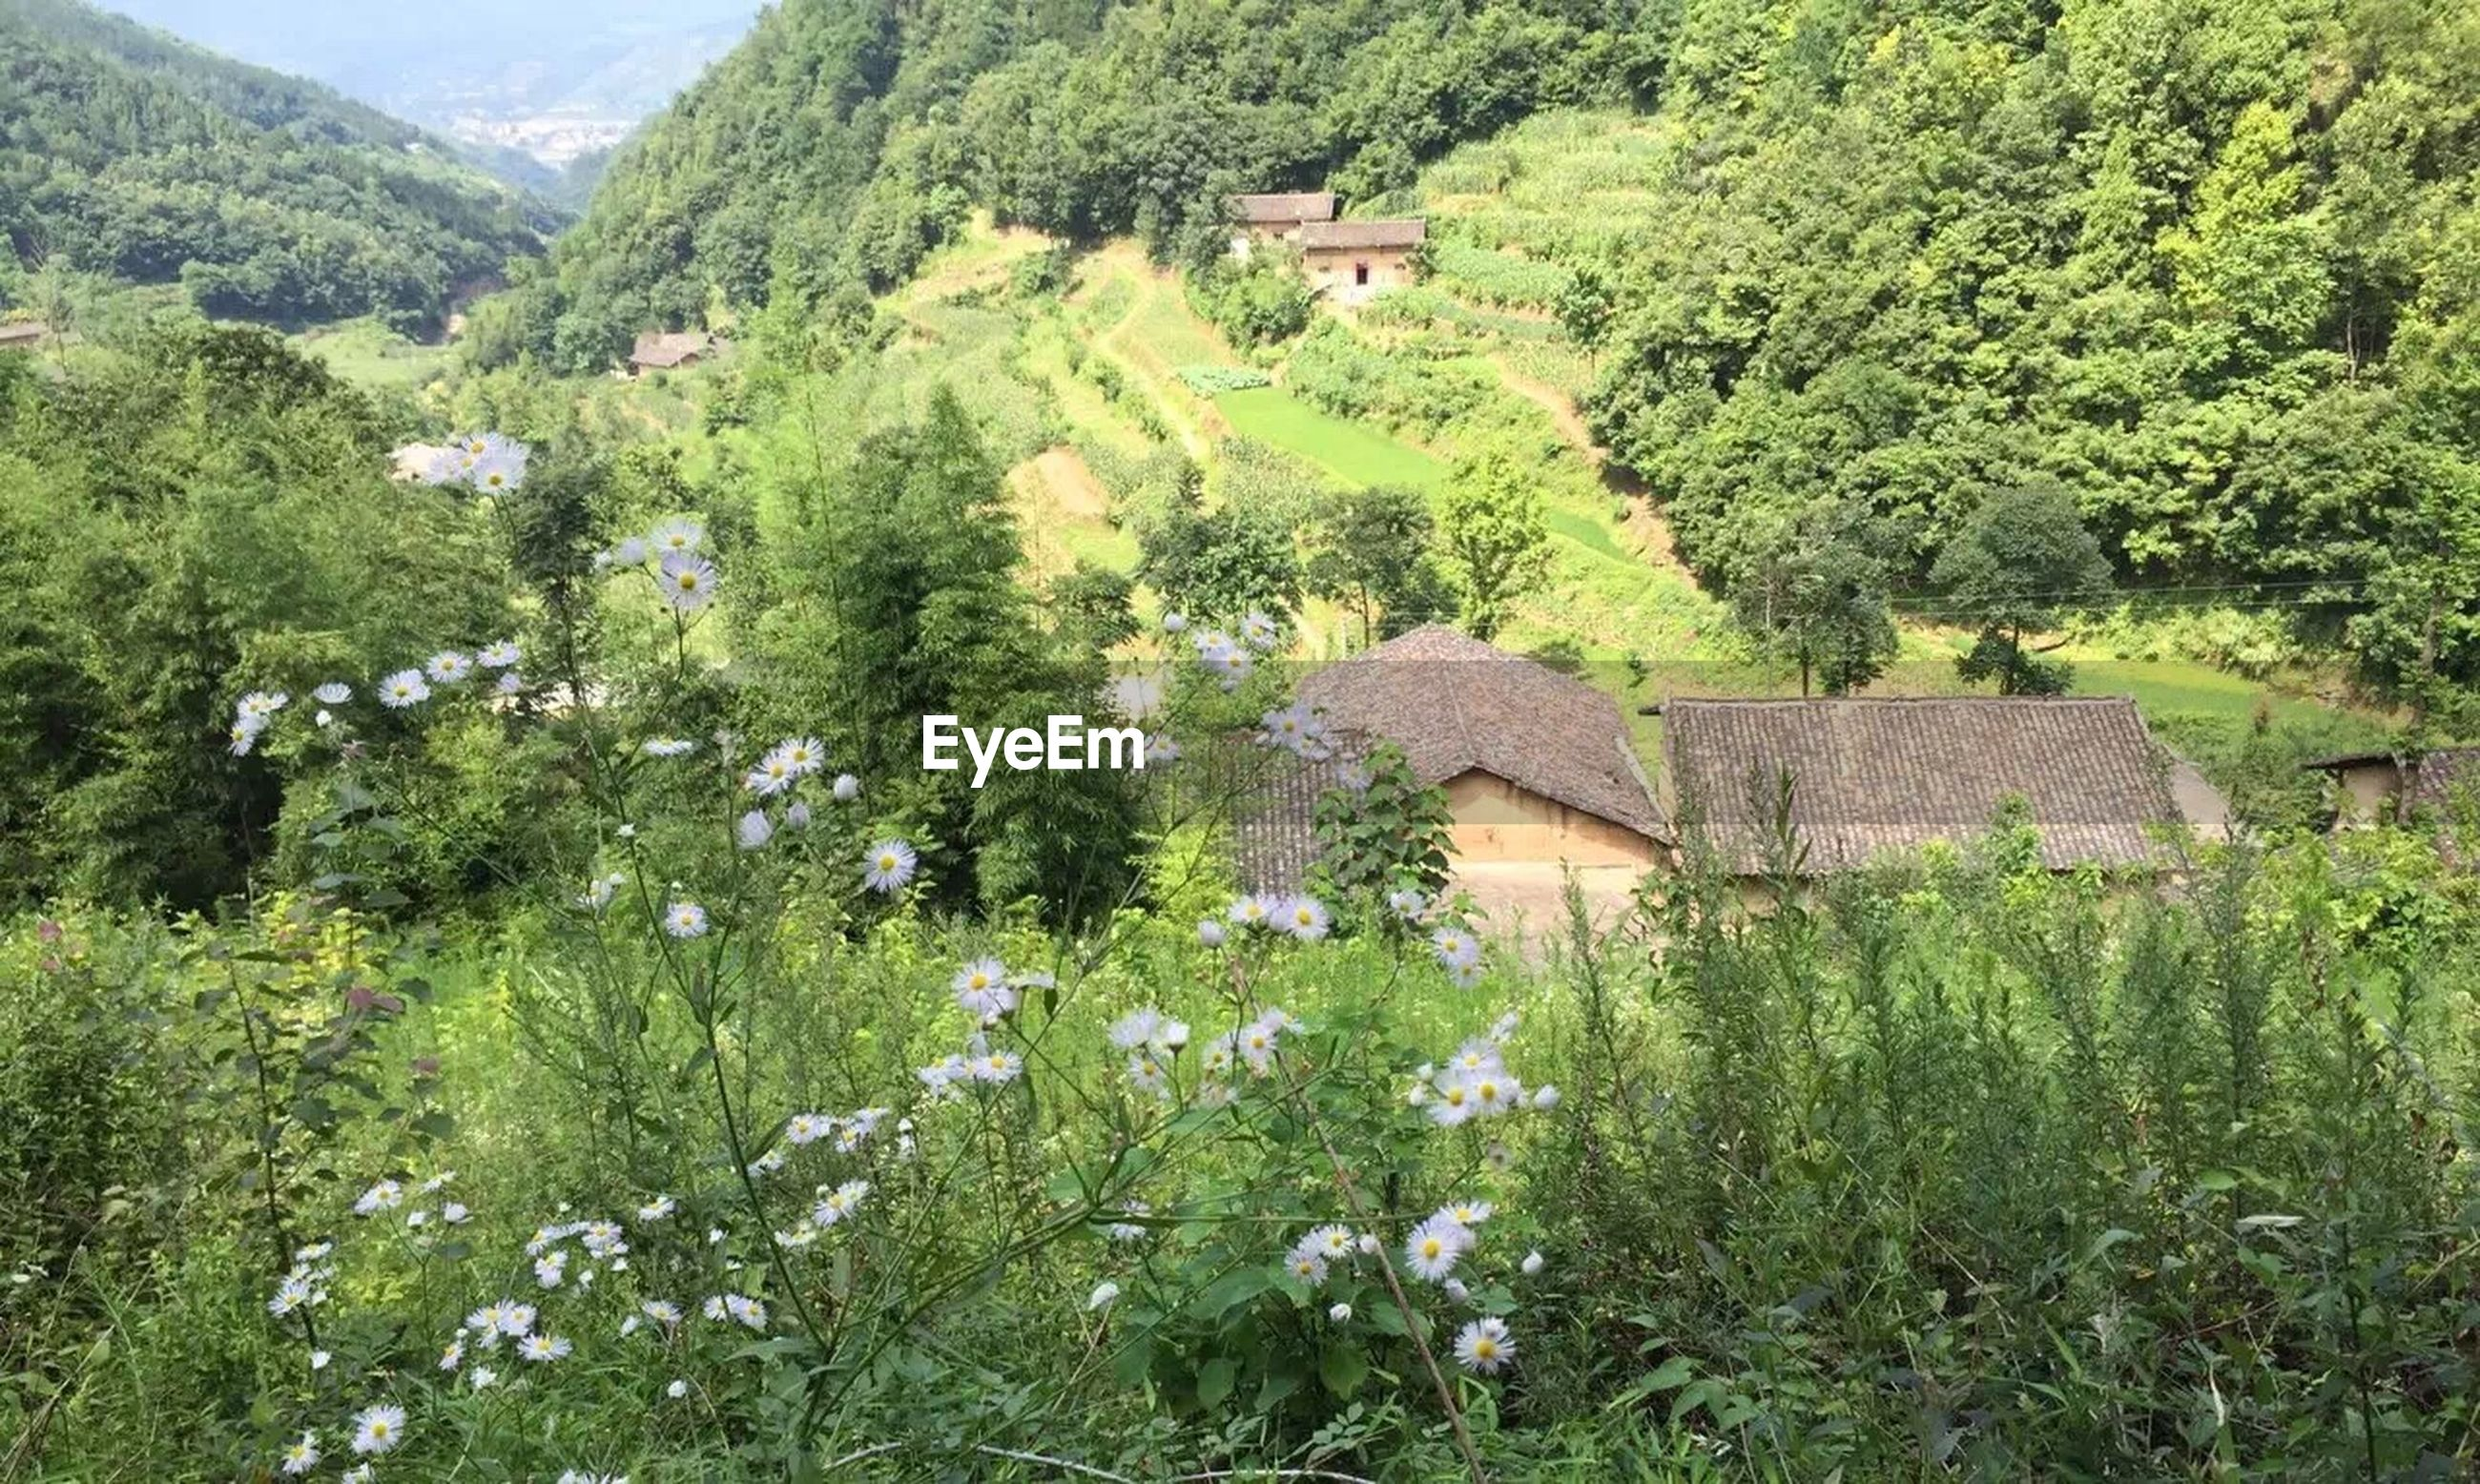 growth, nature, tree, green color, house, rural scene, no people, beauty in nature, flower, field, agriculture, tranquil scene, outdoors, plant, building exterior, mountain, landscape, day, scenics, architecture